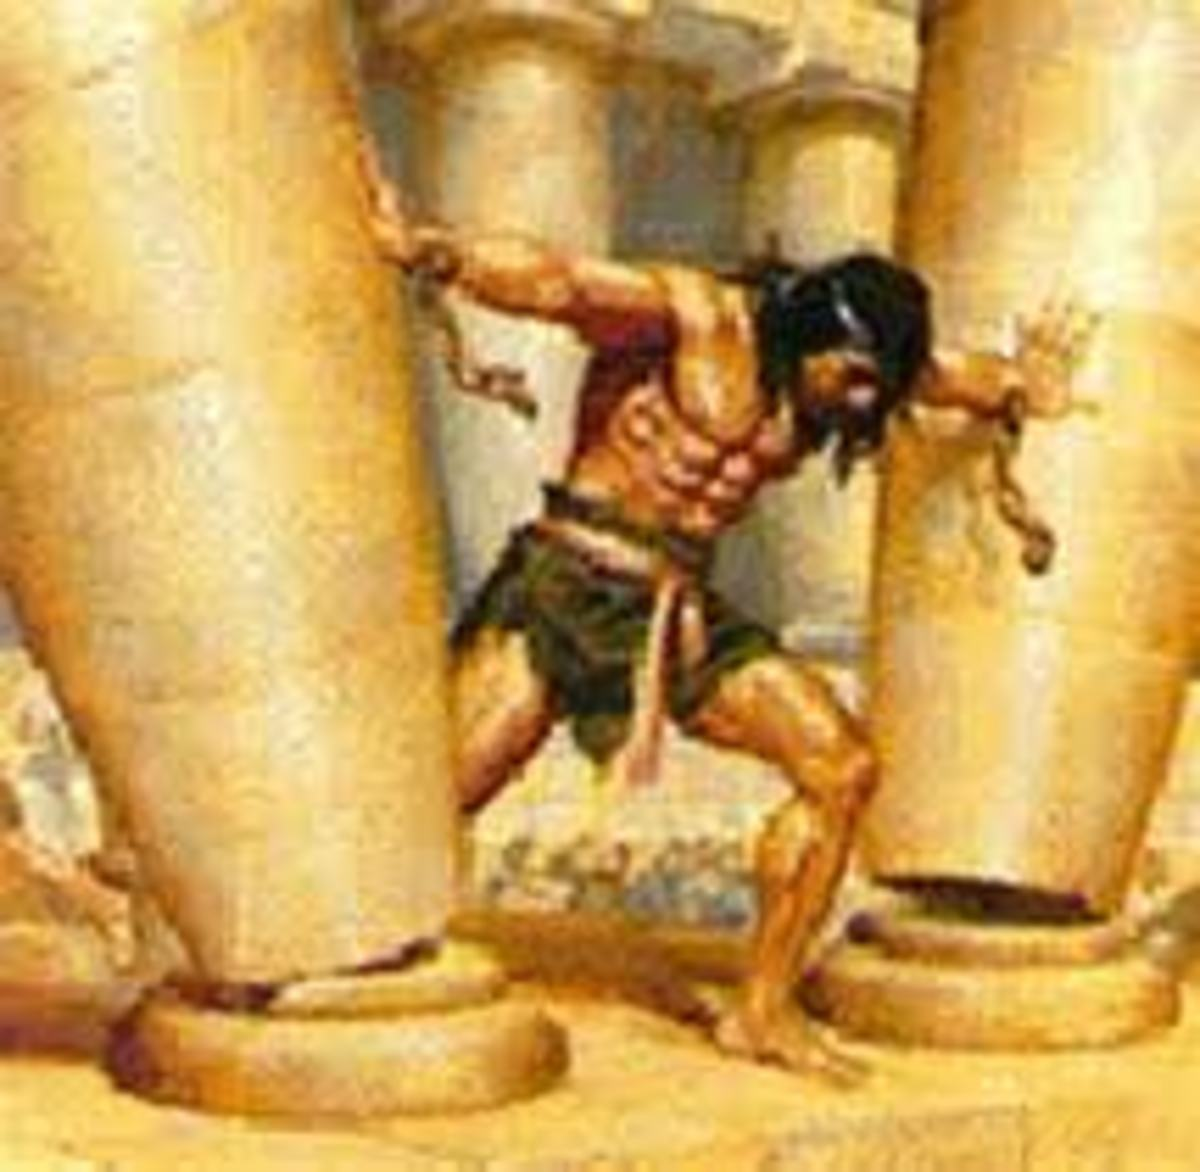 Samson, destroying the temple of Dagon the Philistine god.